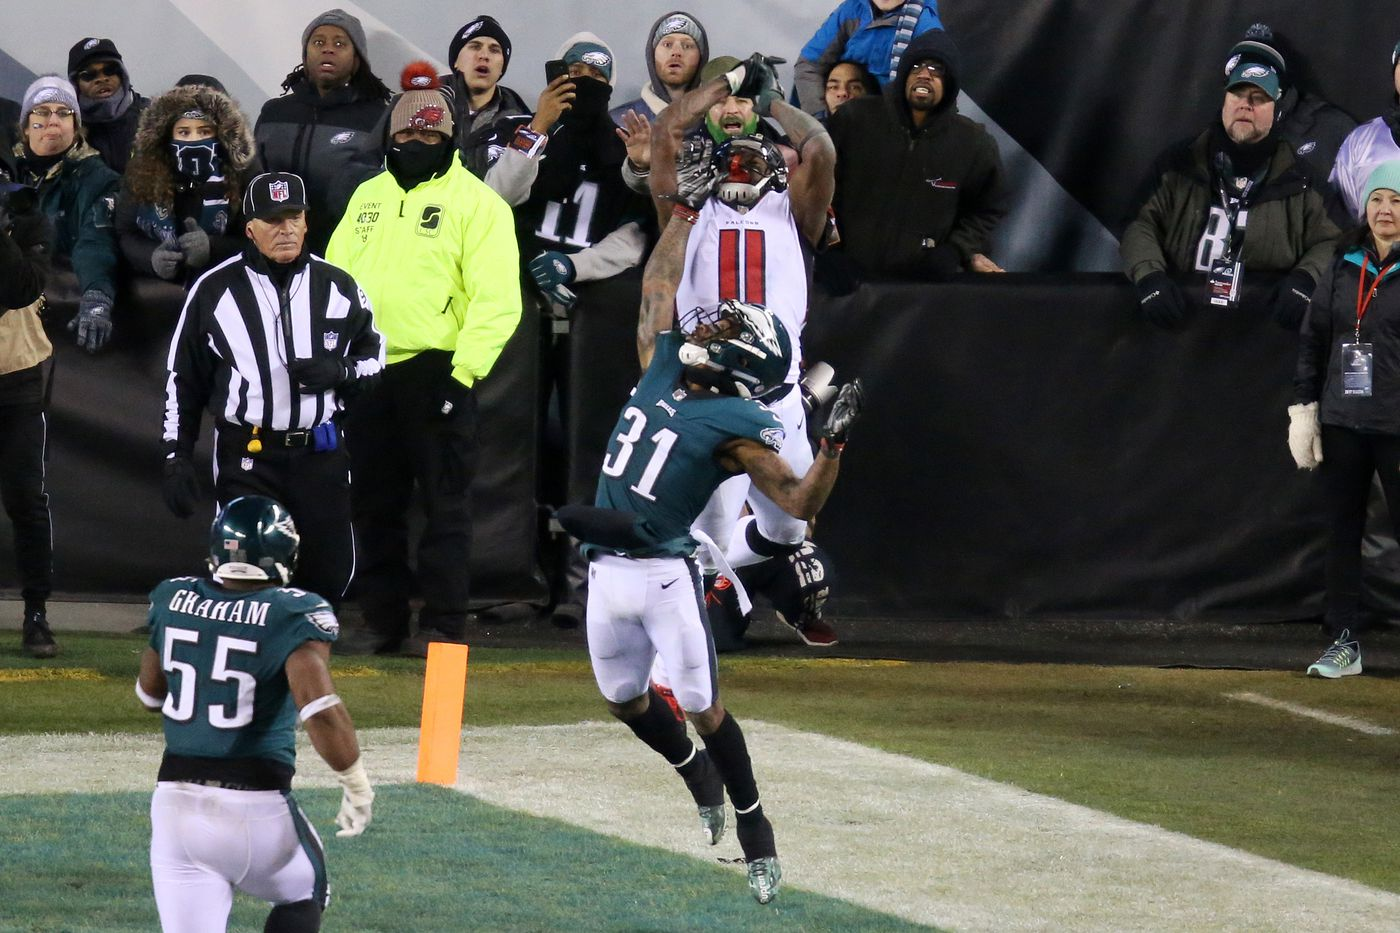 Atlanta Falcons bring back the memory of what almost wasn't for Eagles | Bob Ford